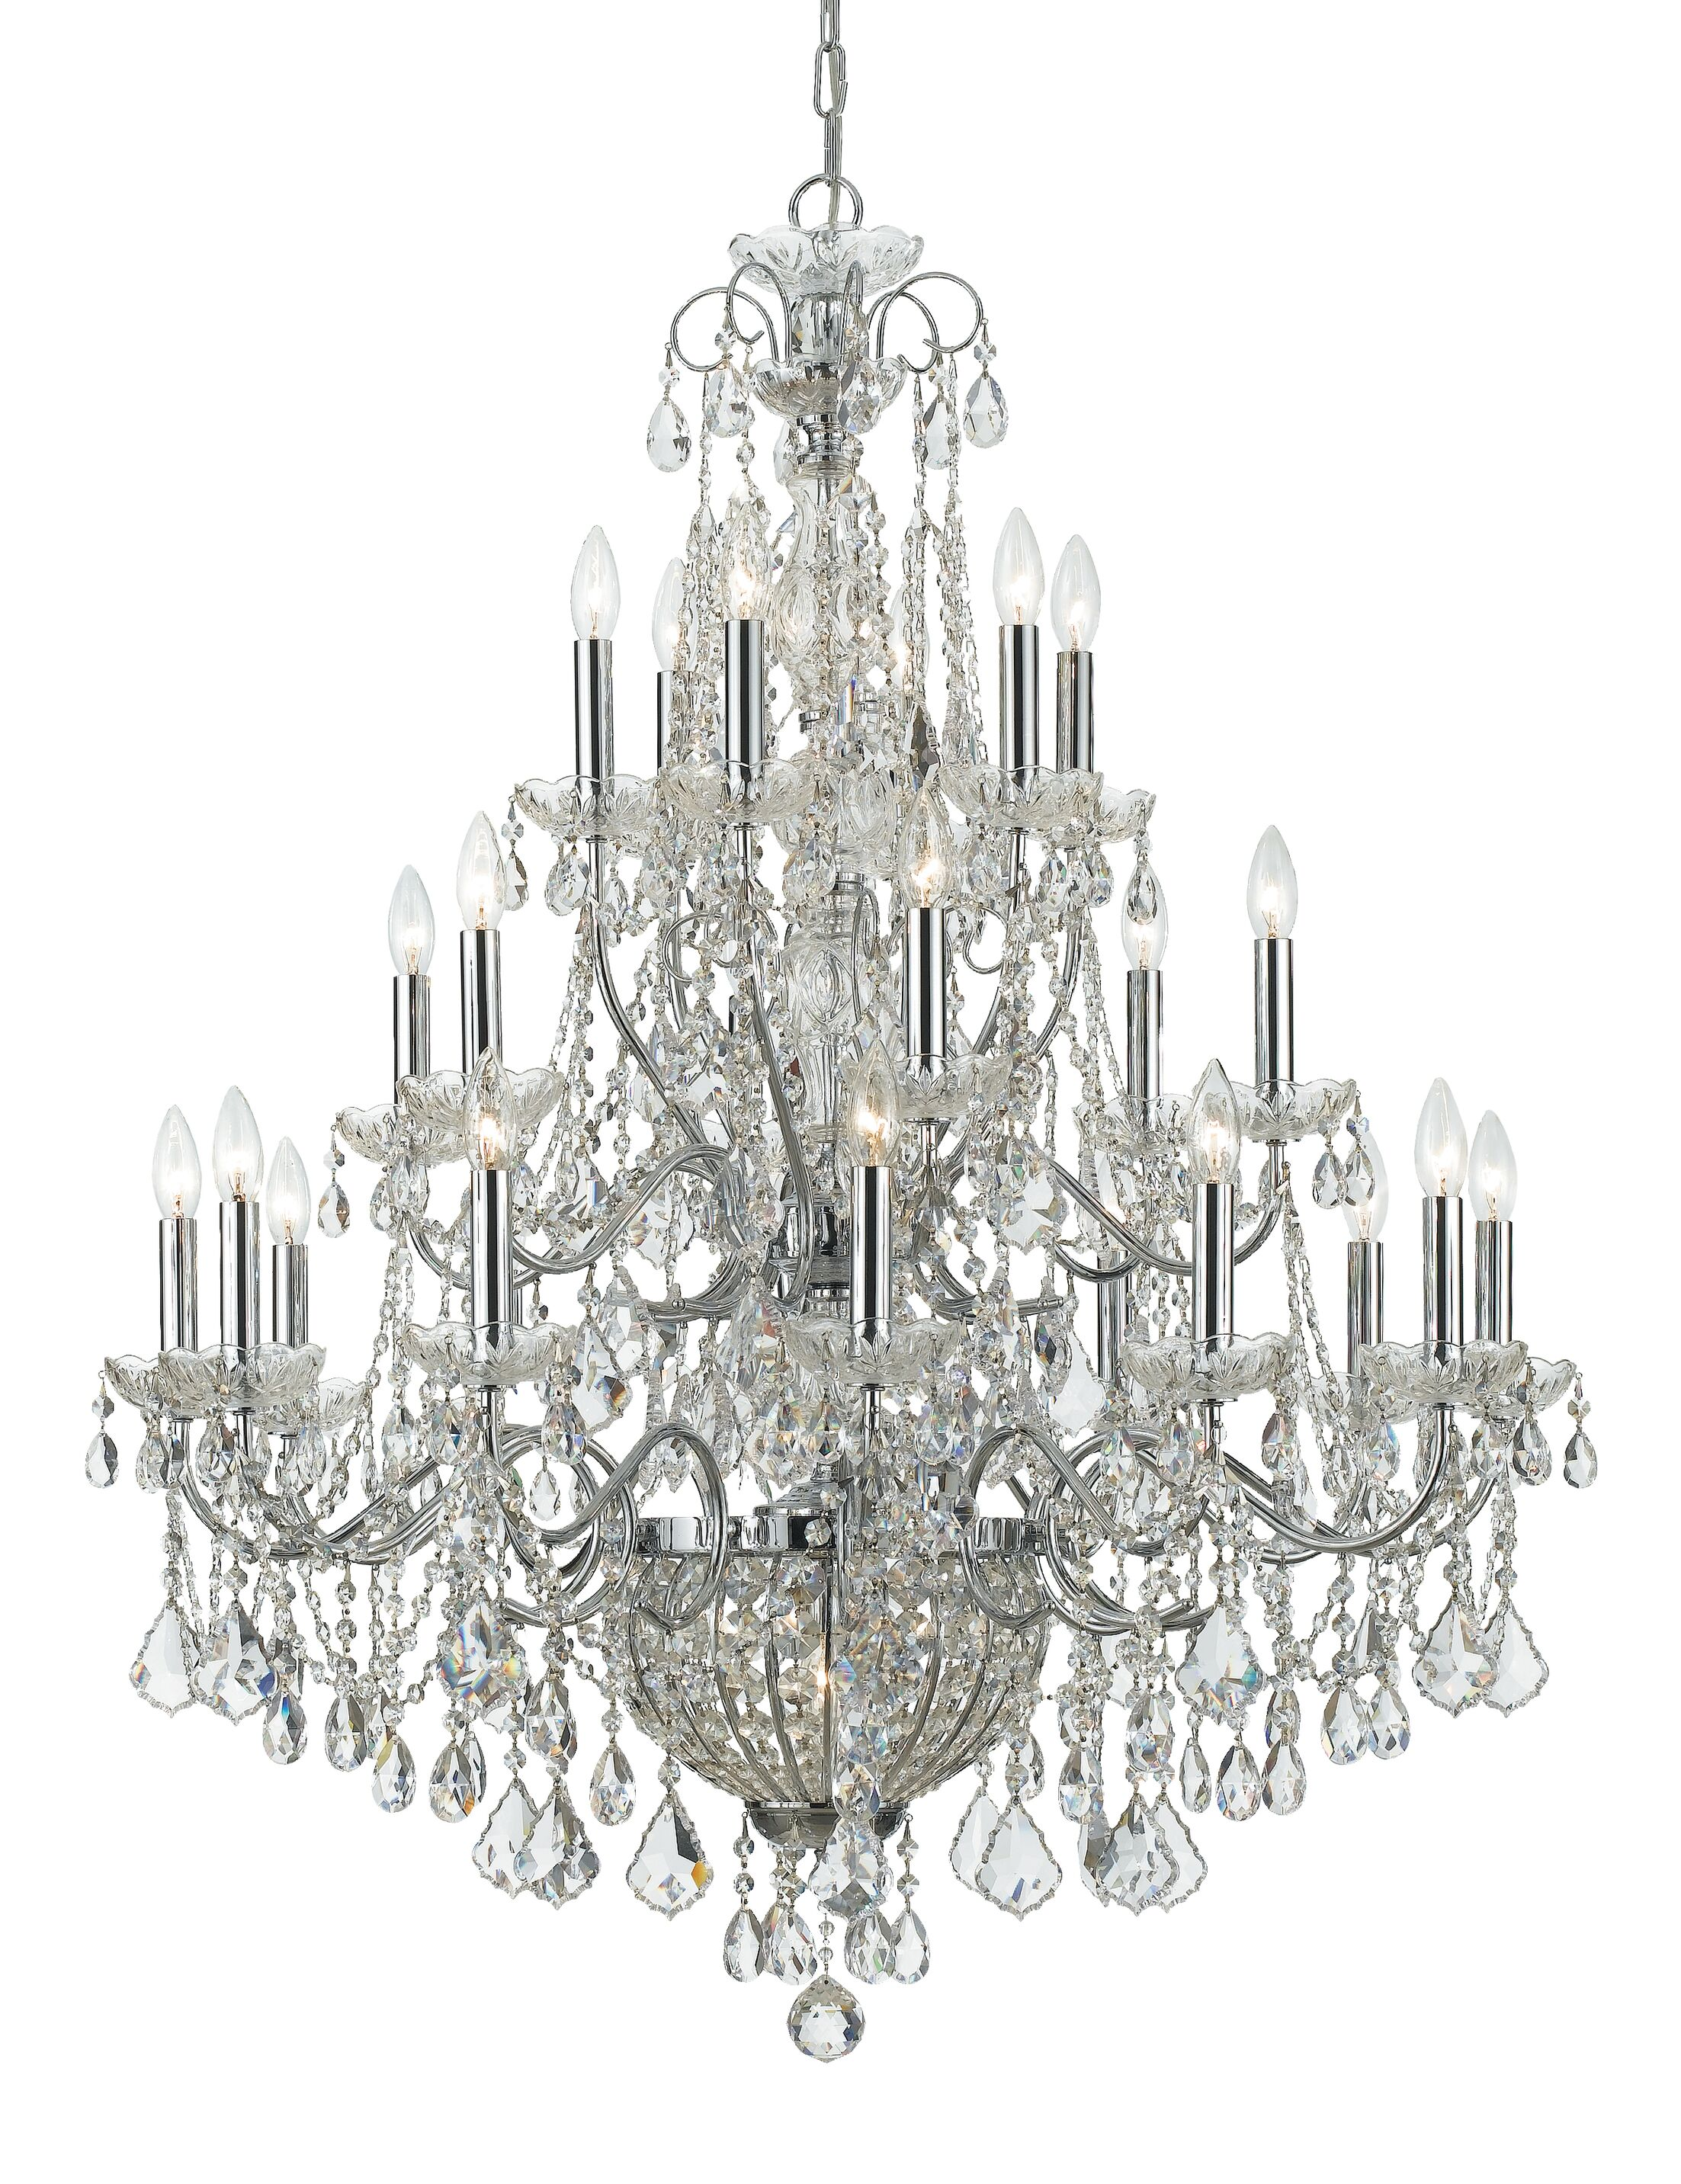 Axton 26-Light Candle Style Chandelier